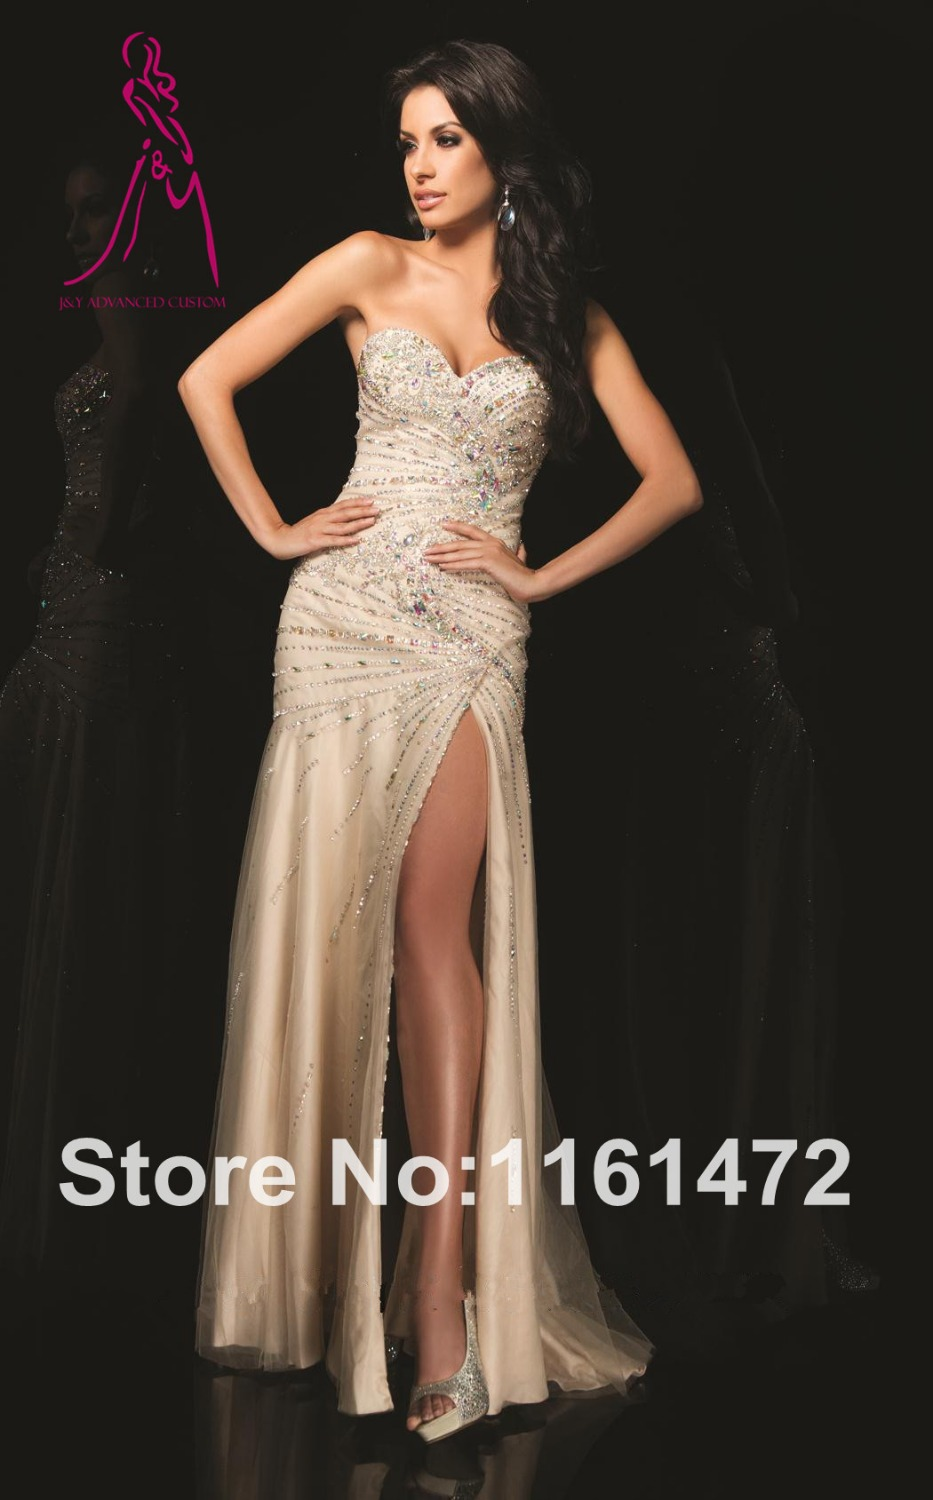 Prom Dresses Stores Las Vegas_Other dresses_dressesss